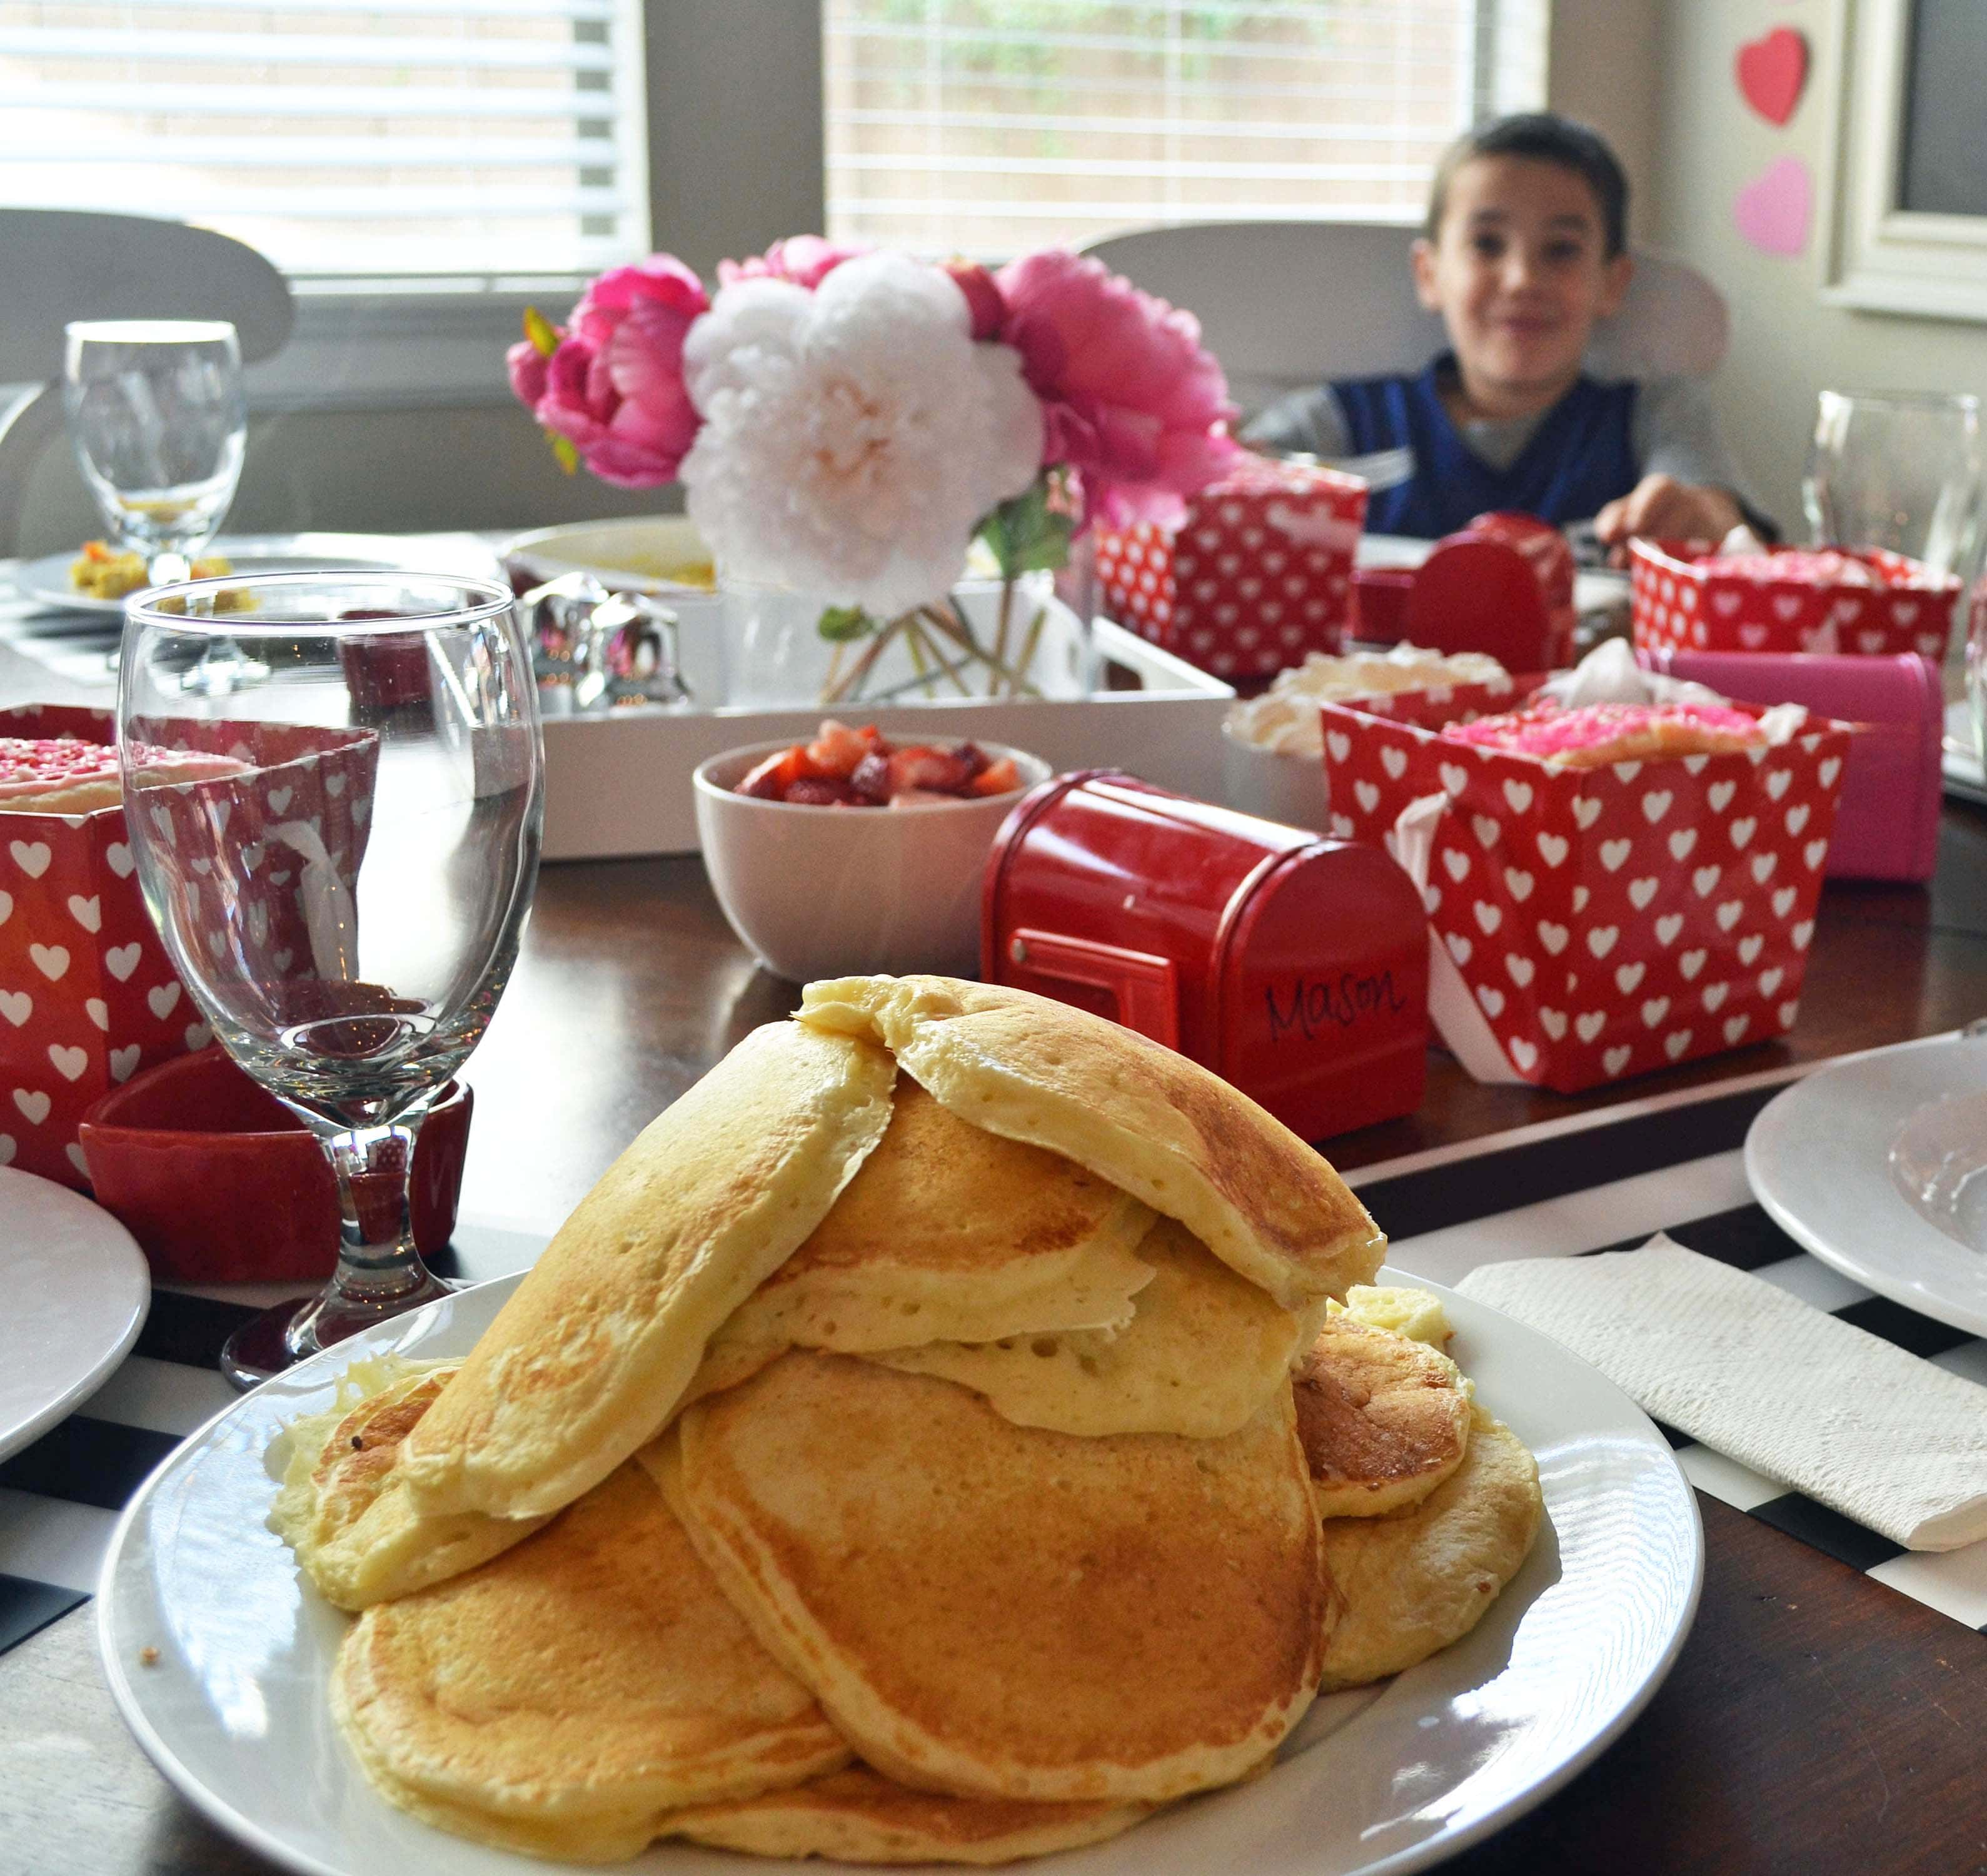 5 ways to make Valentine's Day special for kids